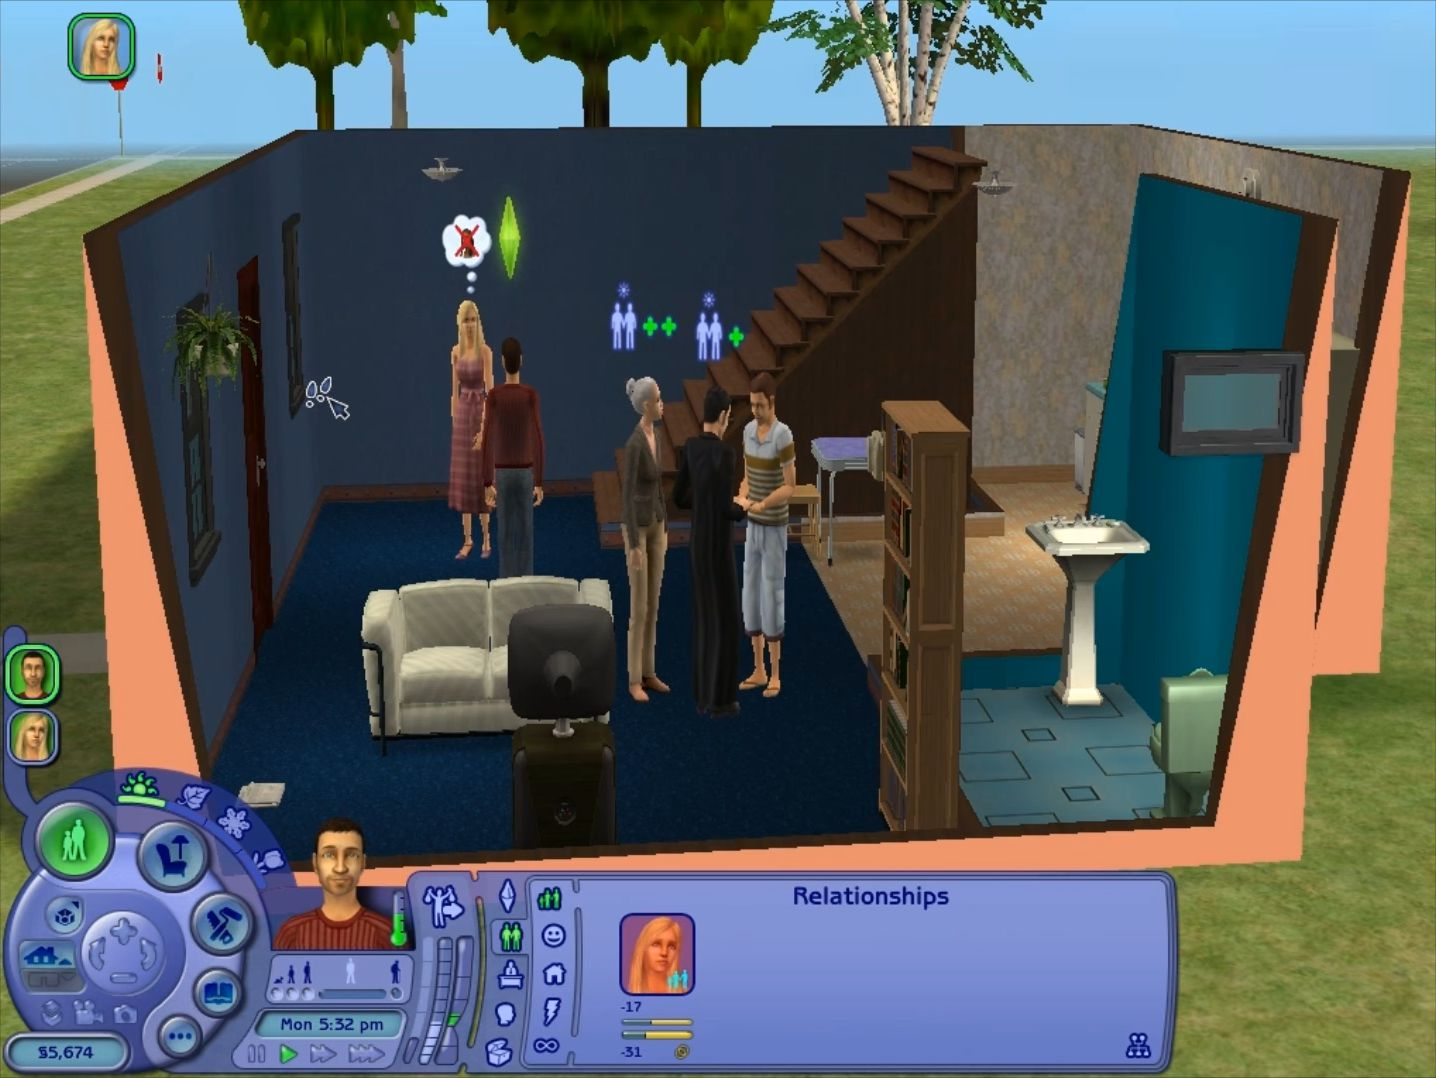 The sims 2 pc full game download celebrity casino night